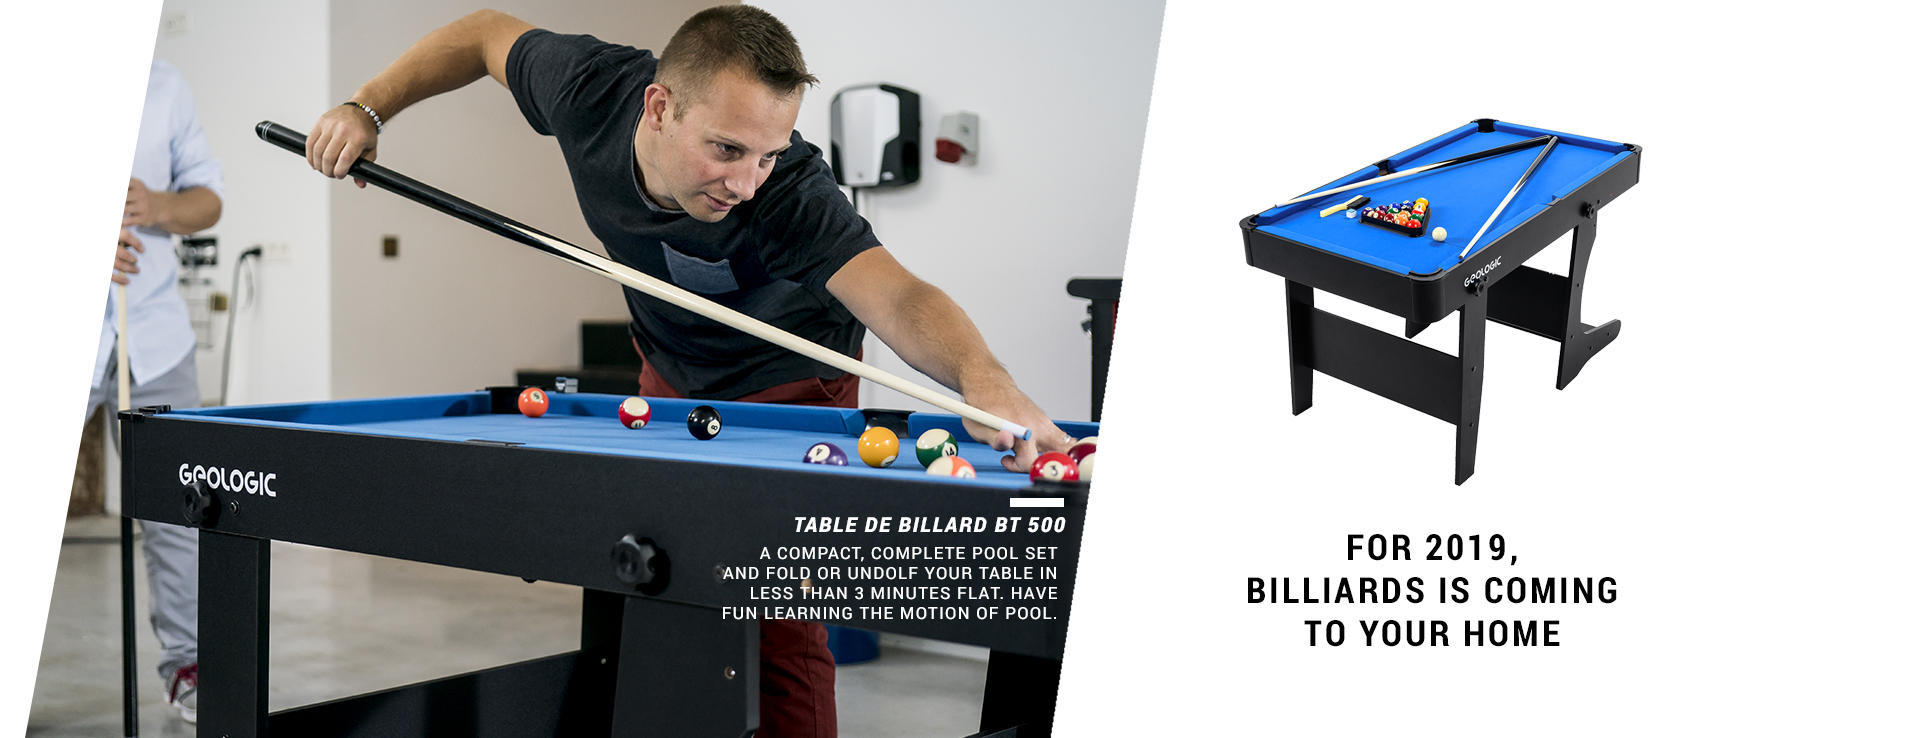 For 2019 Billiard is coming to your home